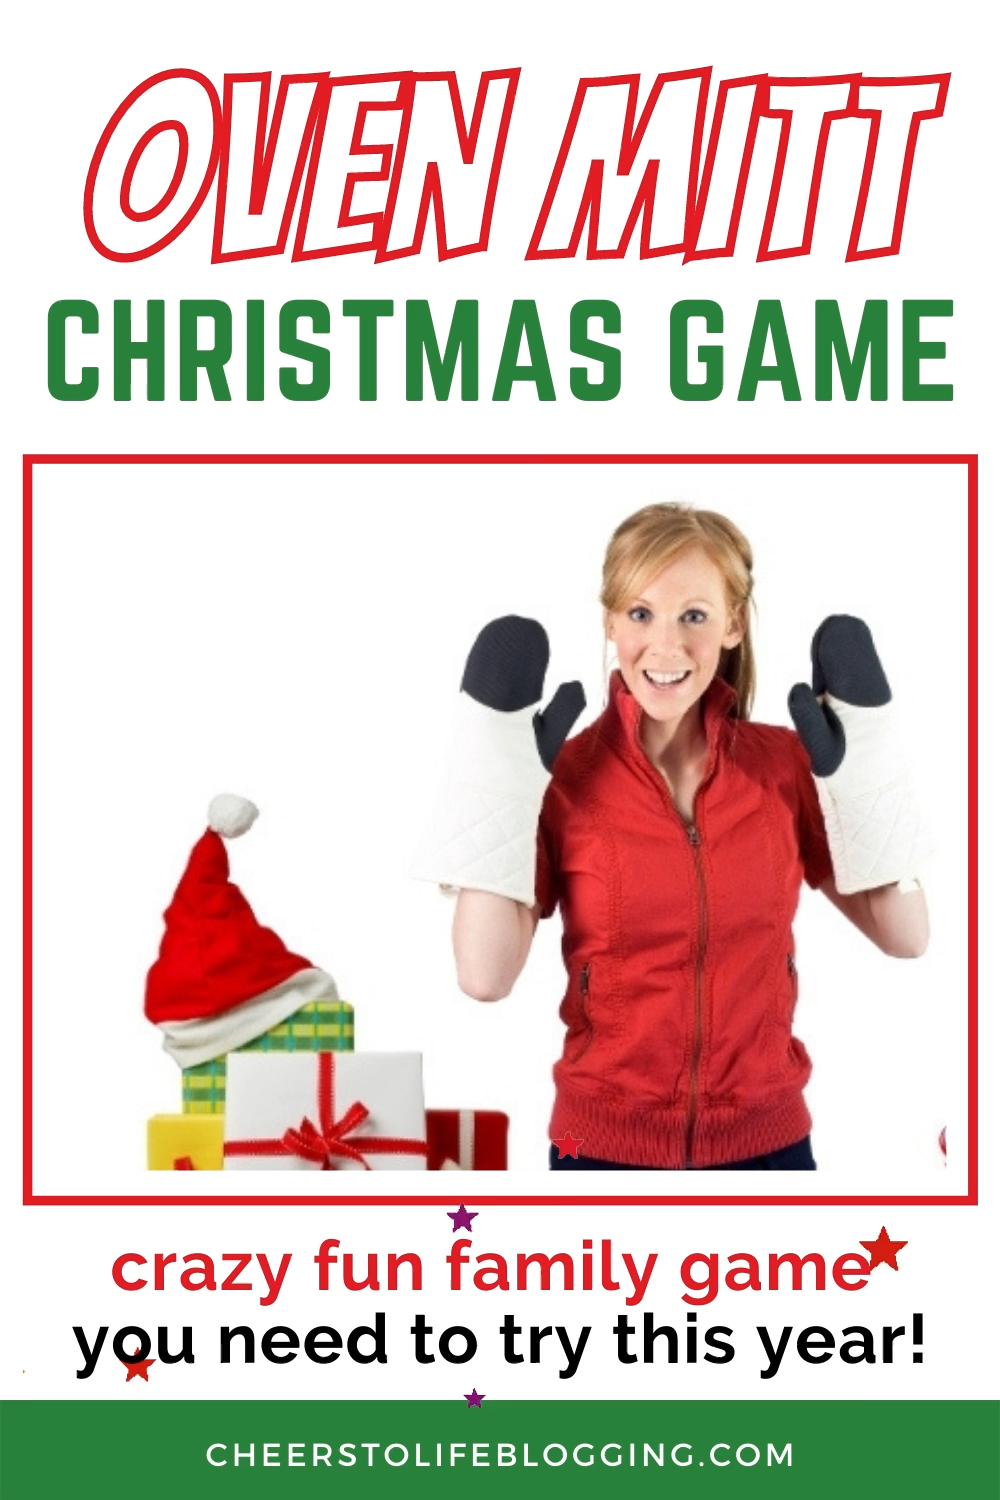 Best Christmas Party Game for Adults - Oven Mitt Game